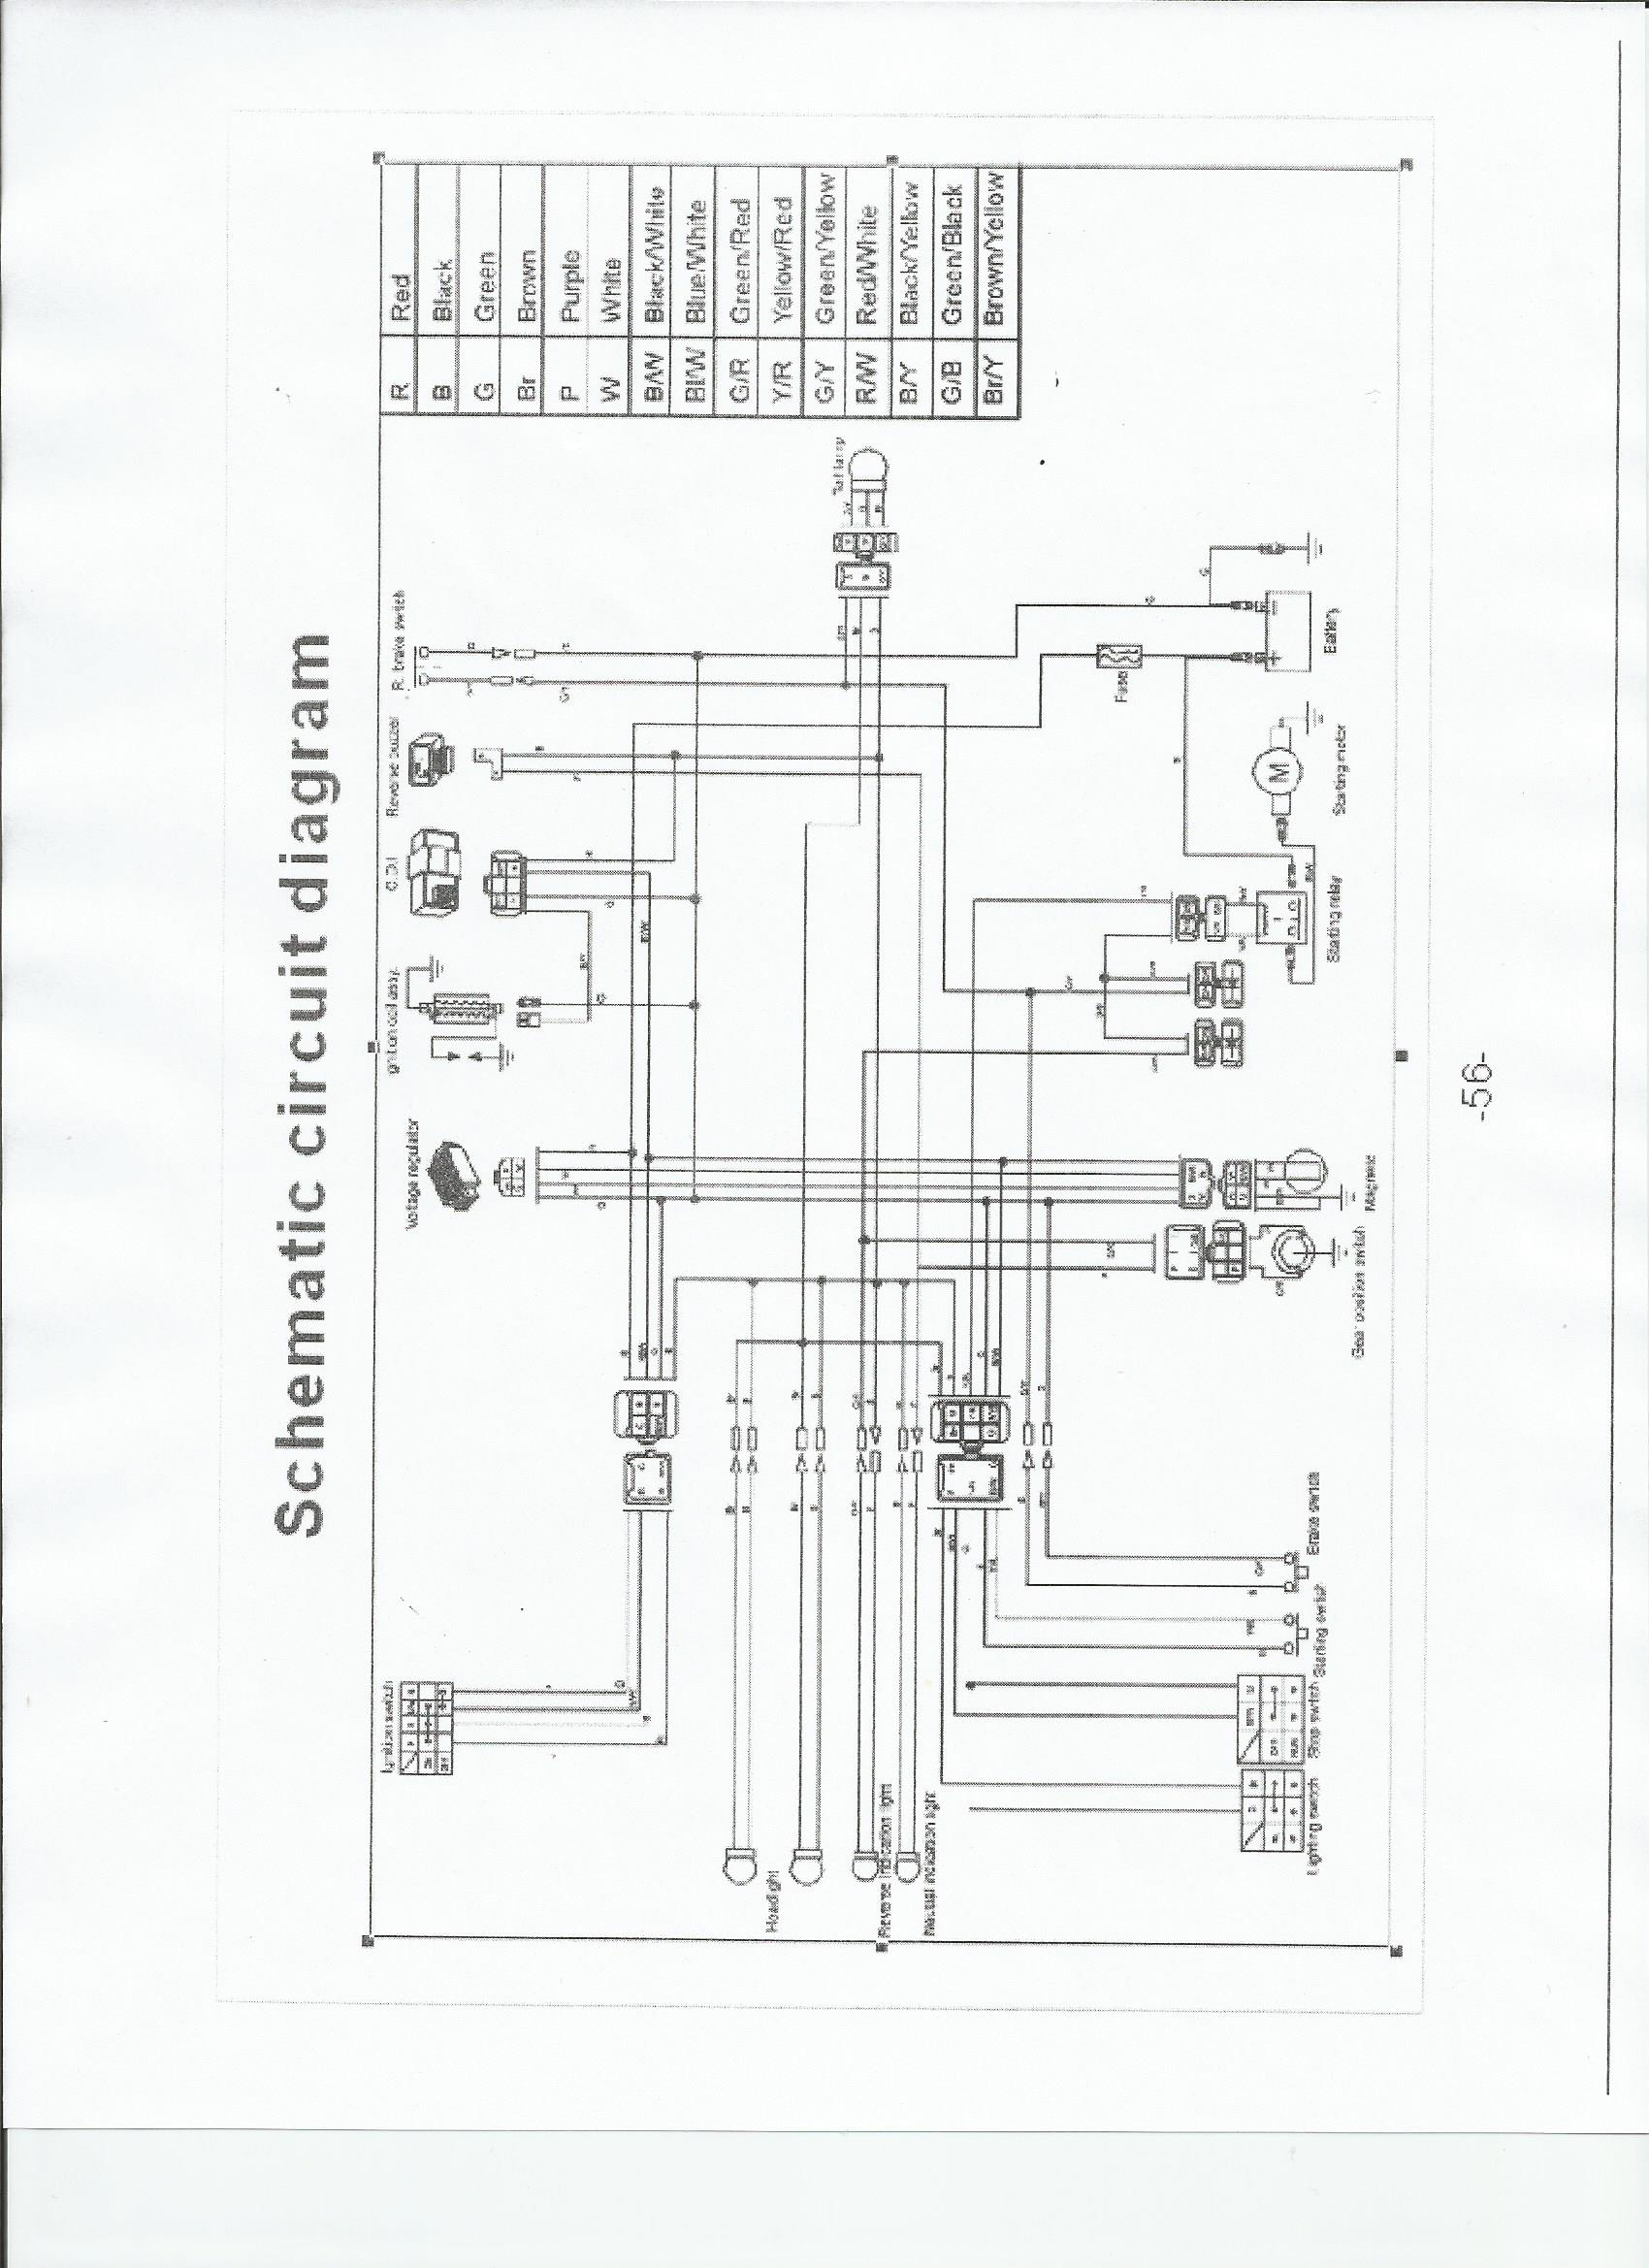 taotao mini and youth atv wiring schematic u2013 familygokarts